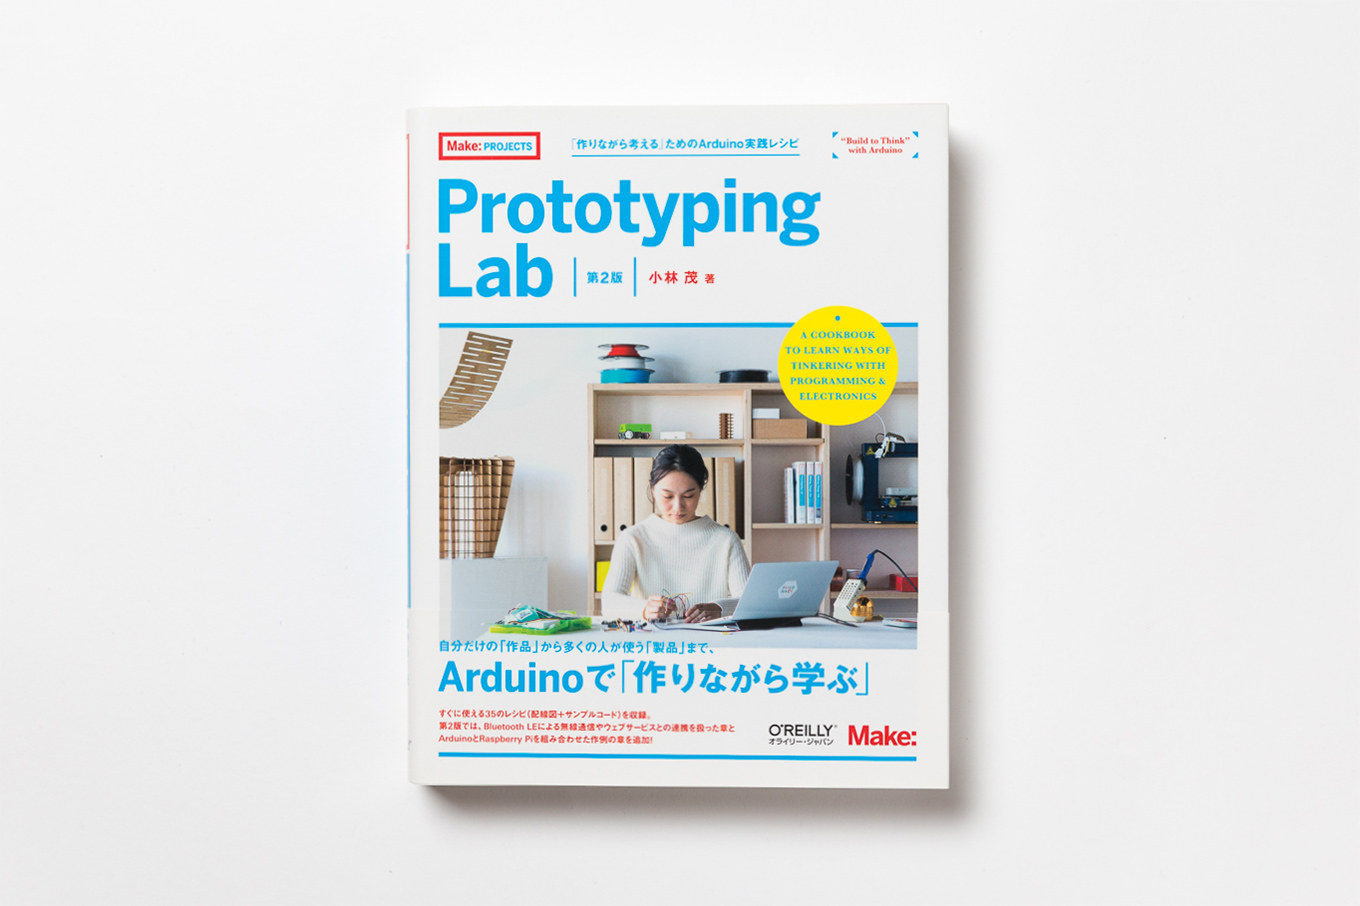 Prototyping Lab